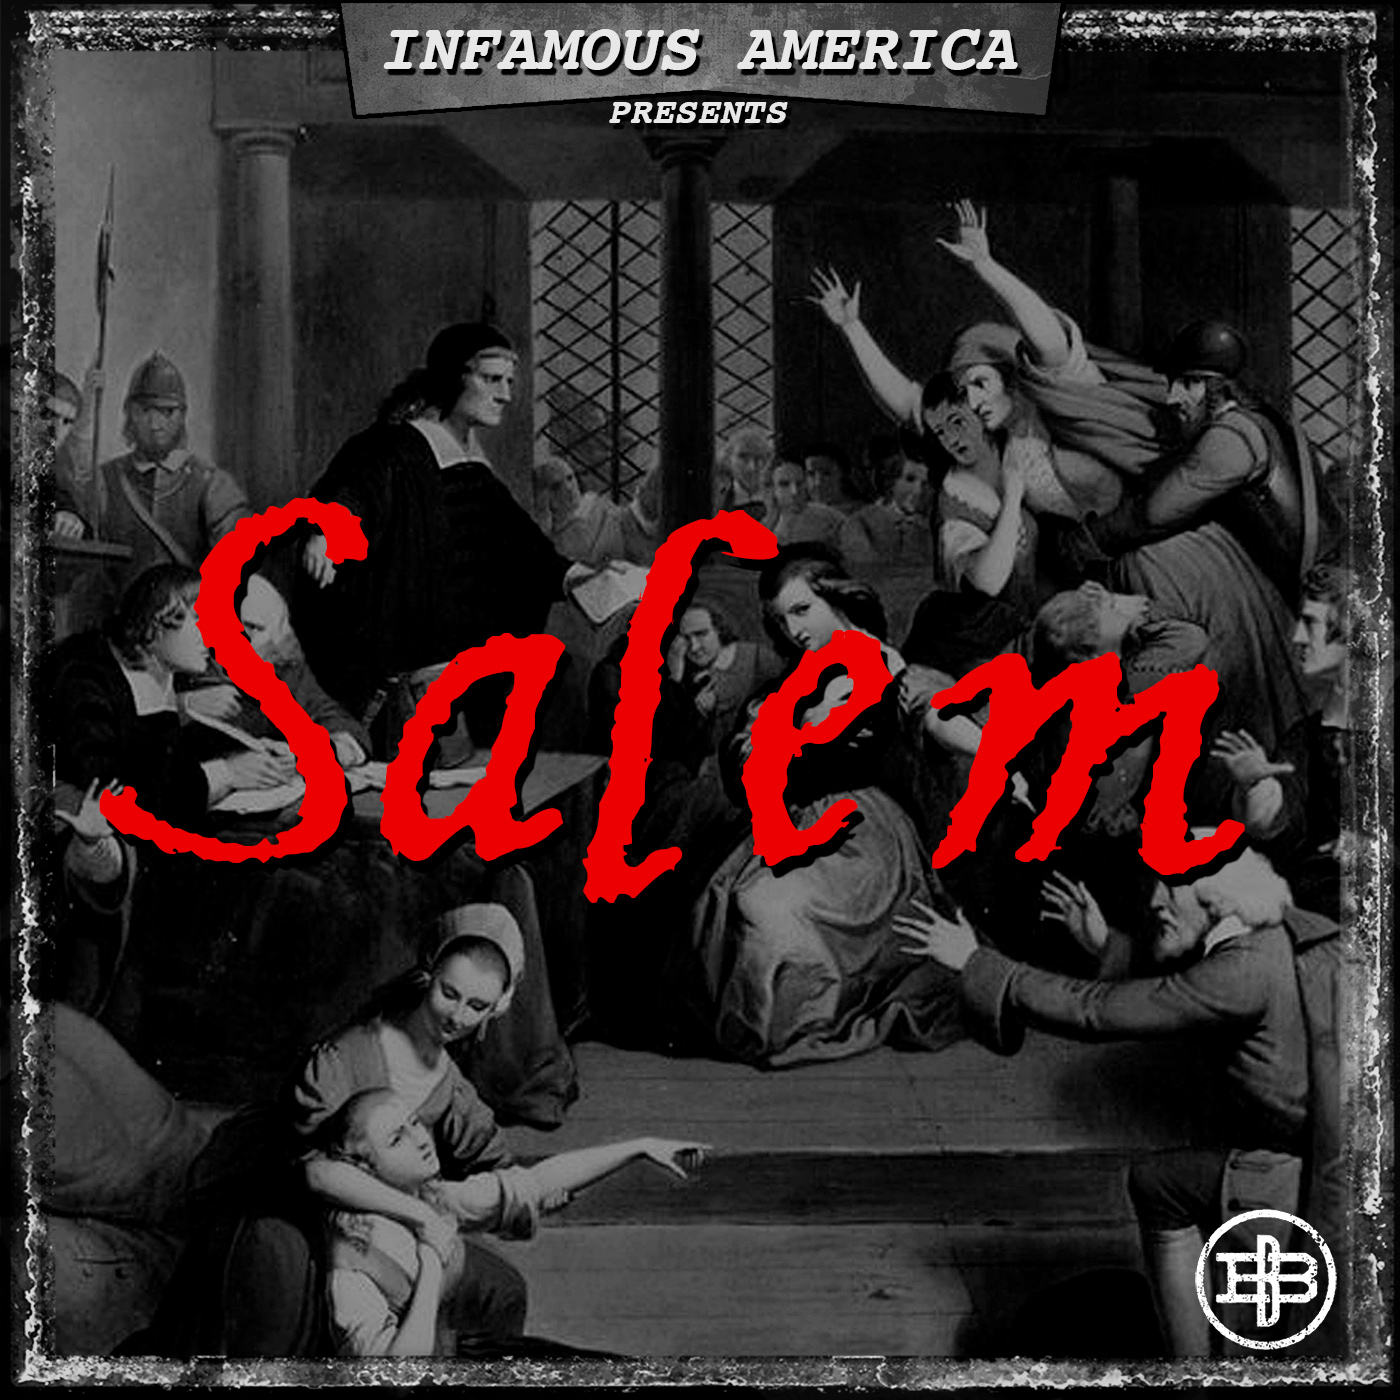 INFAMOUS AMERICA | Salem Interview: Rachel Christ